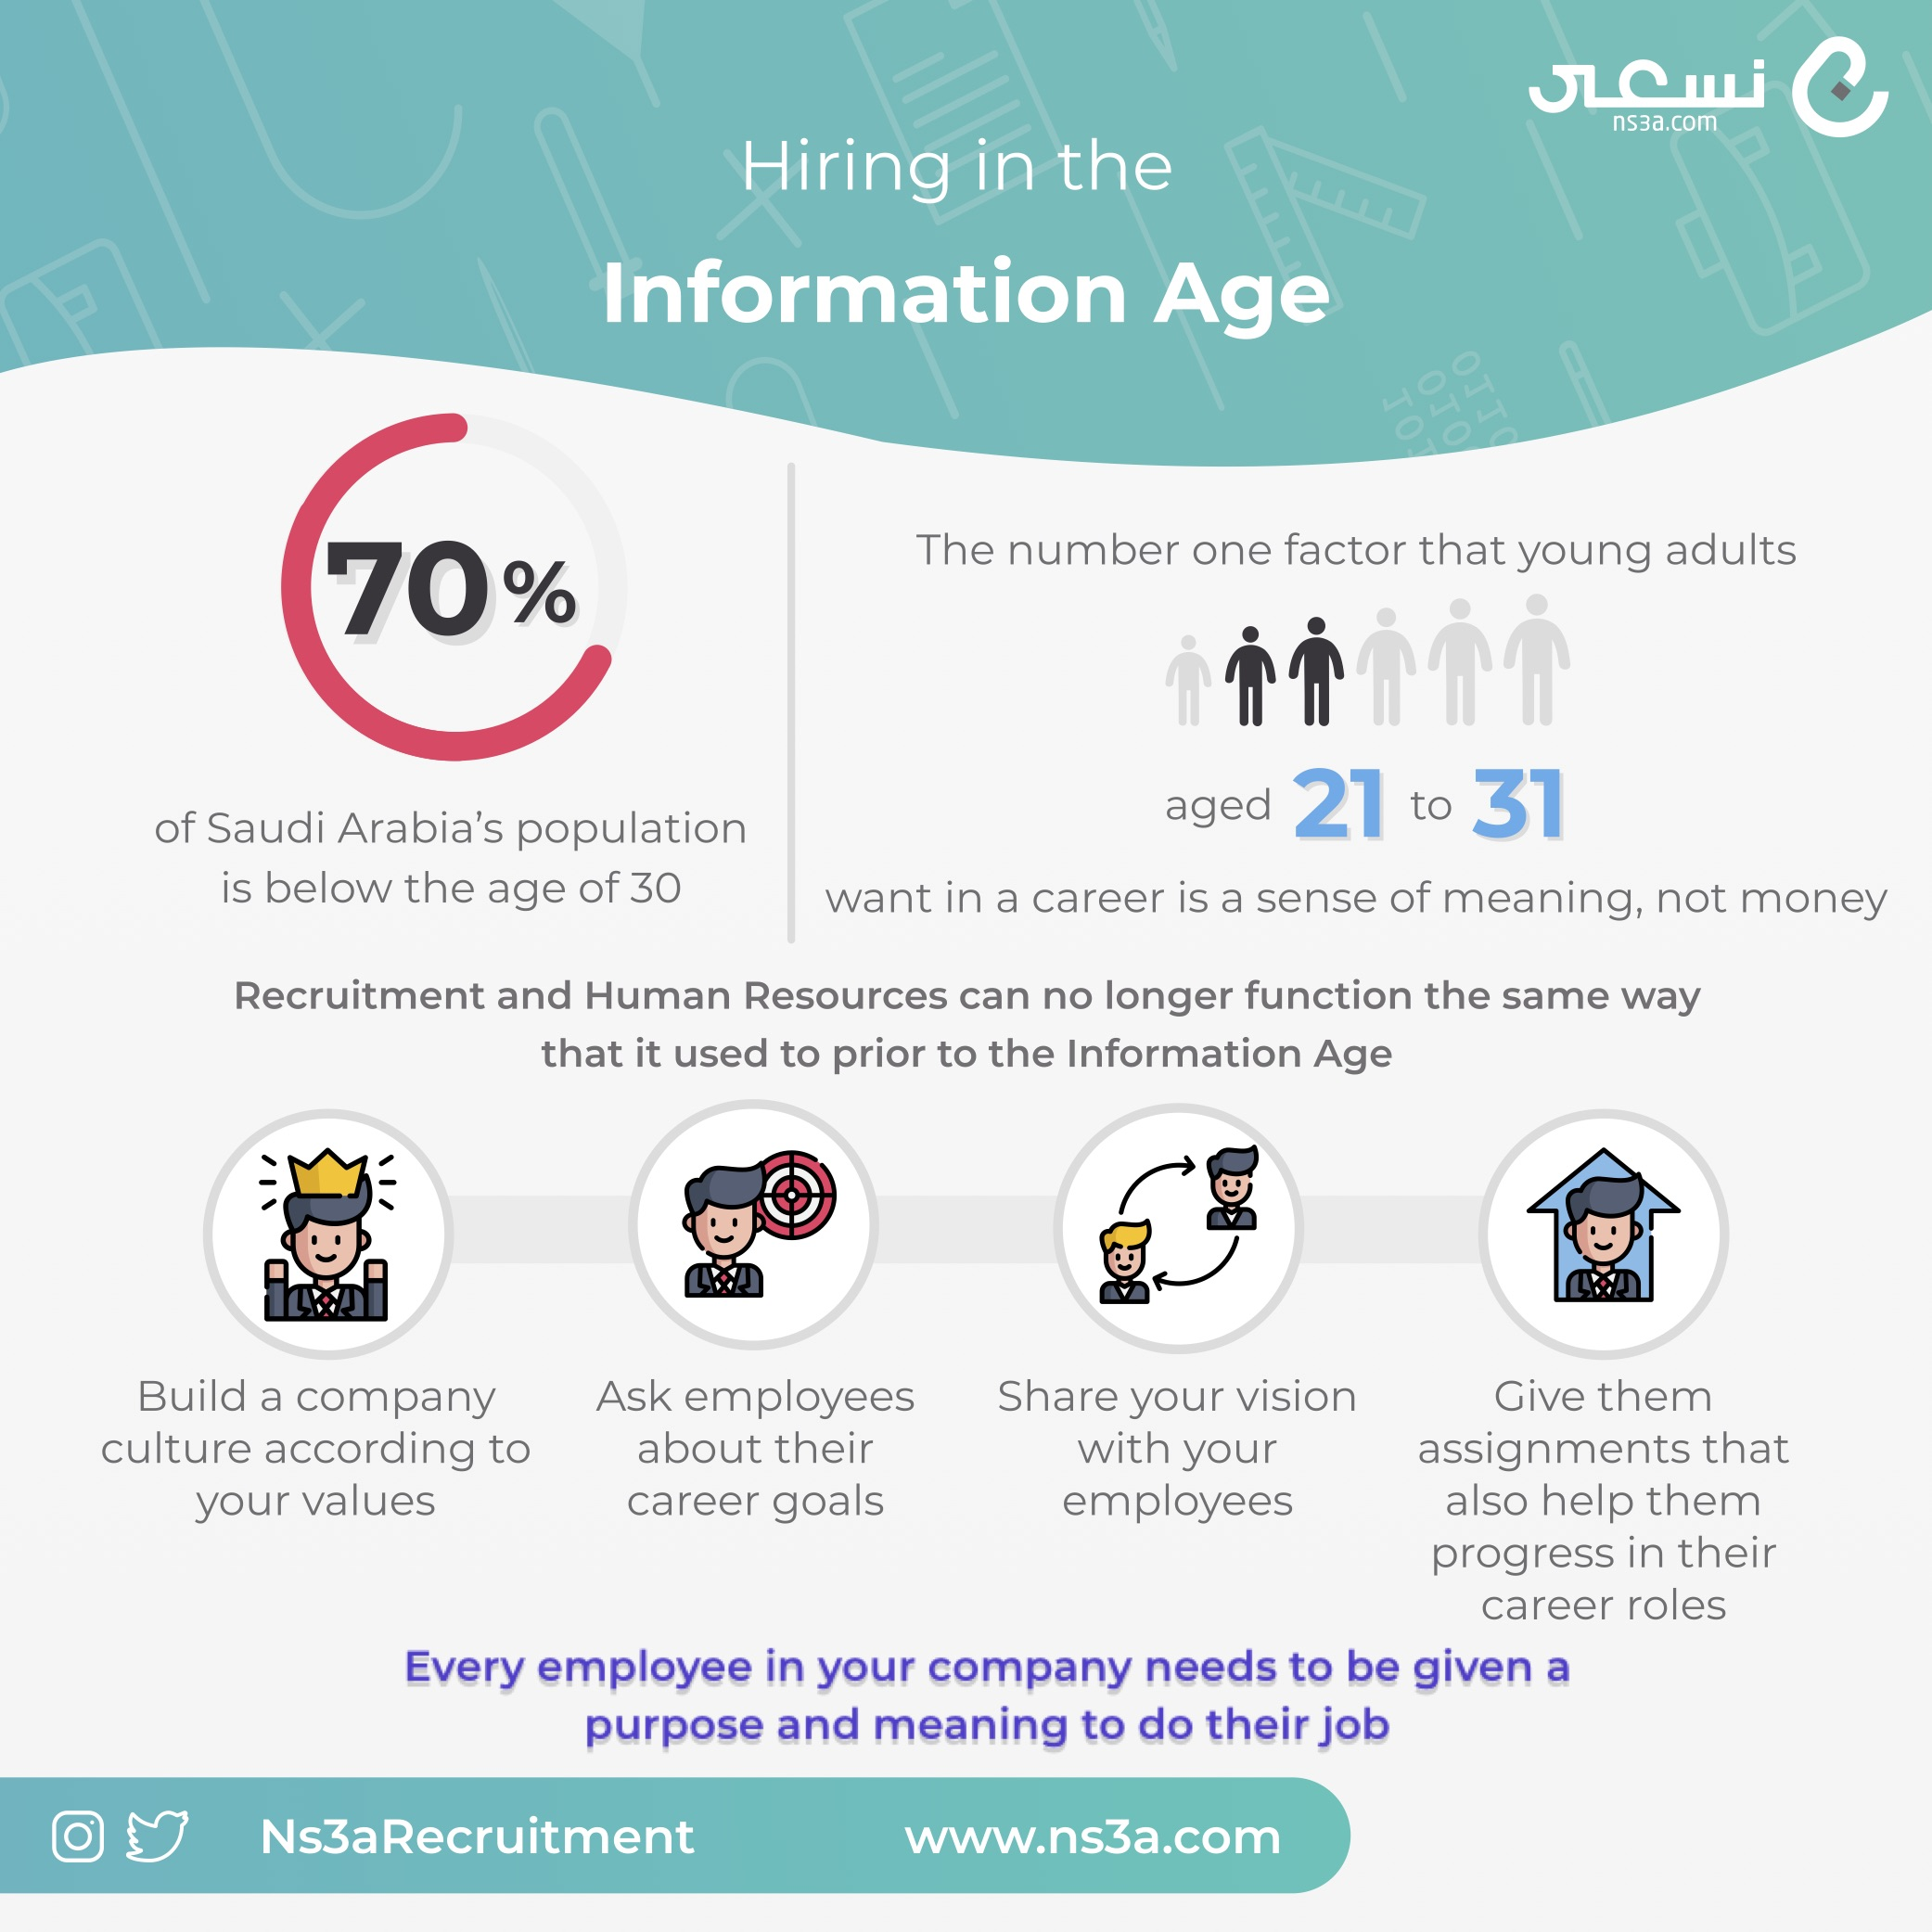 Hiring in the Information Age